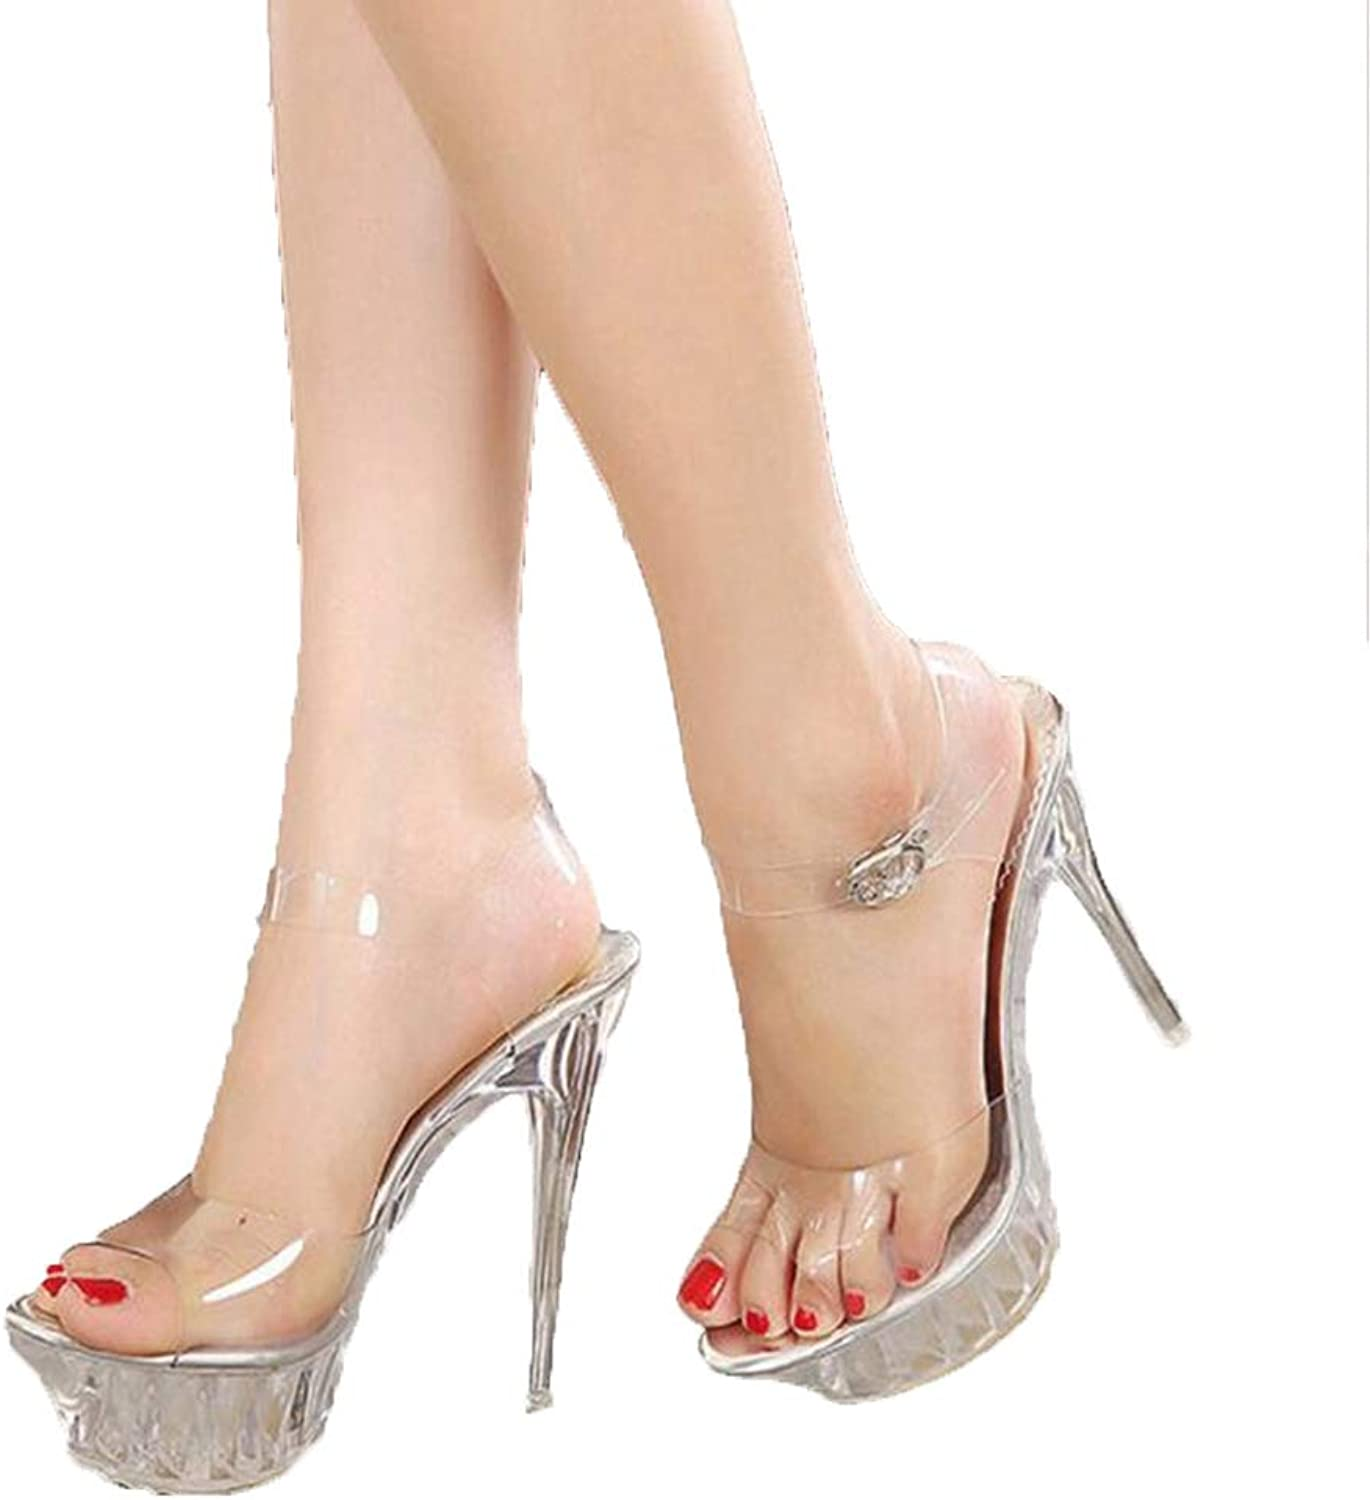 Pophight New Lady Crystal high Heels Star high Waterproof Platform Transparent Sandals Sexy Wedding shoes Big Size 35-43 9wedding Sandals